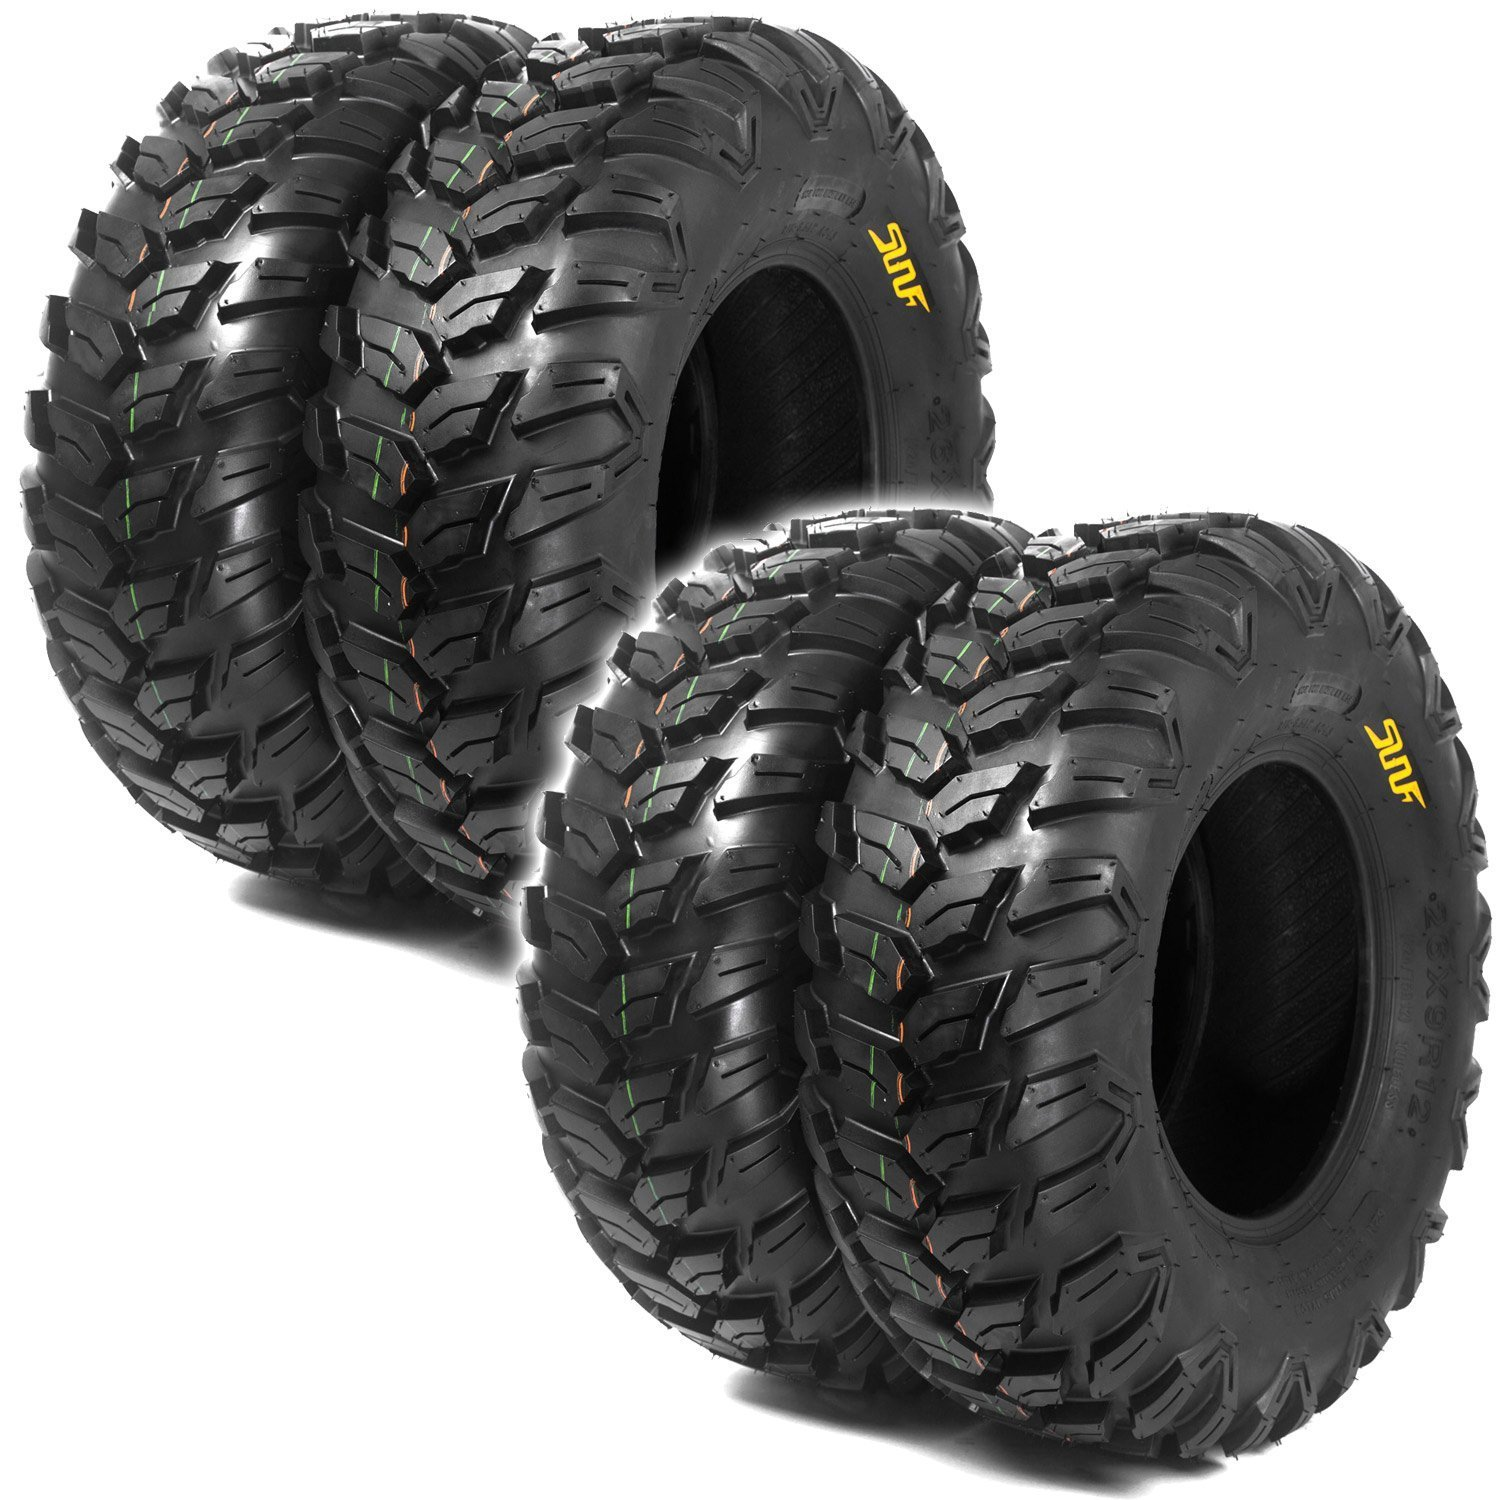 Set of 4 SunF A043 ATV Tires 6 PLY Front & Rear (27x9-12&27x11-12)